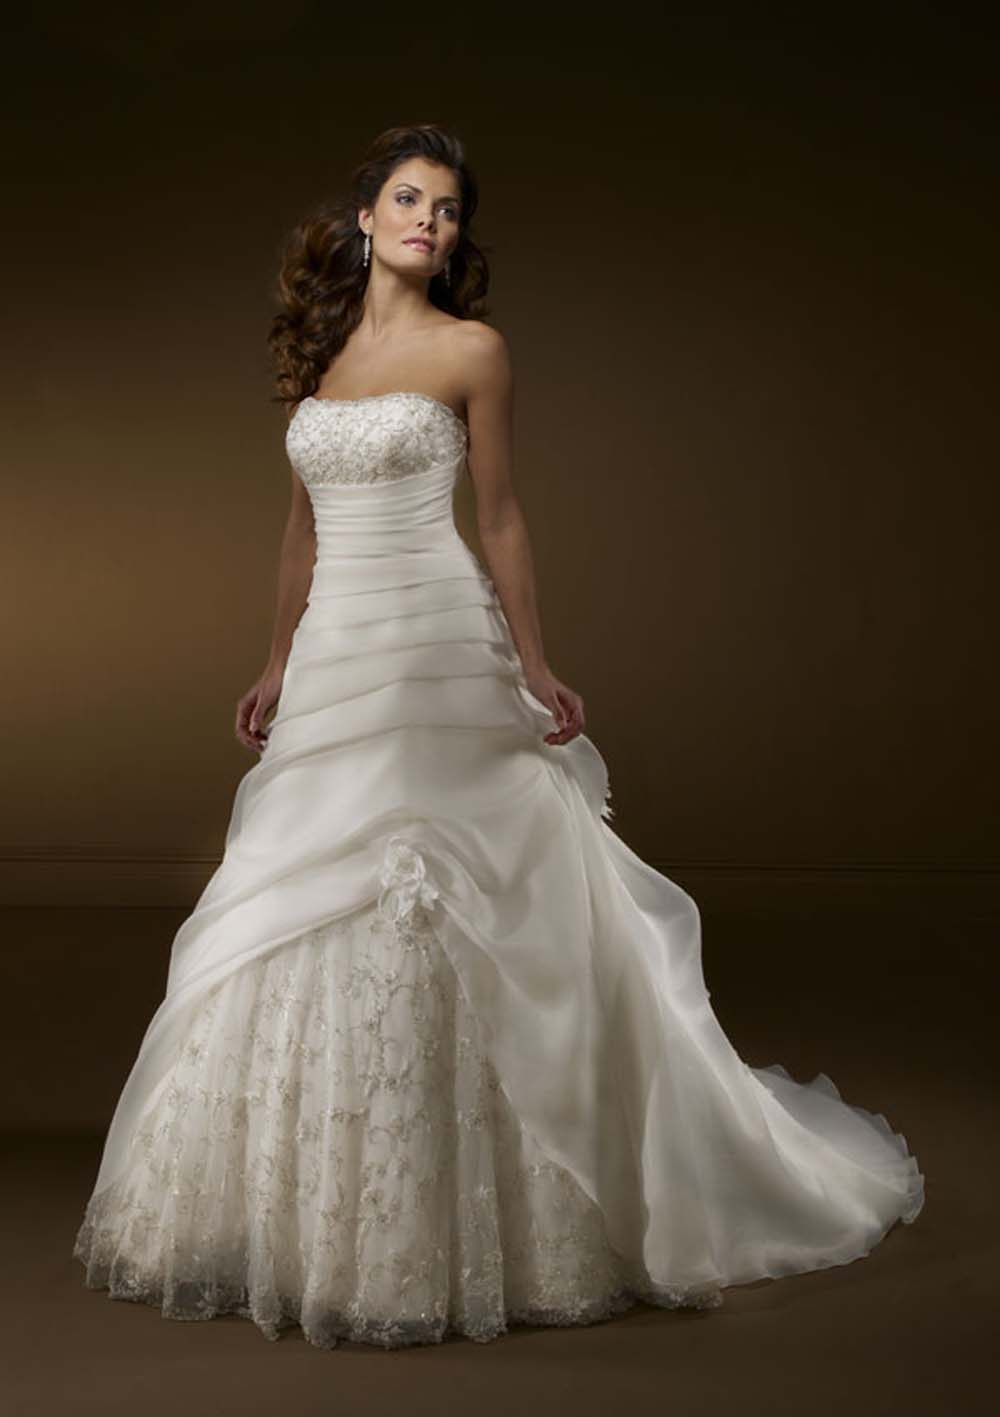 Romantic Bridal Gowns : Romantic bridal gowns wedding dresses